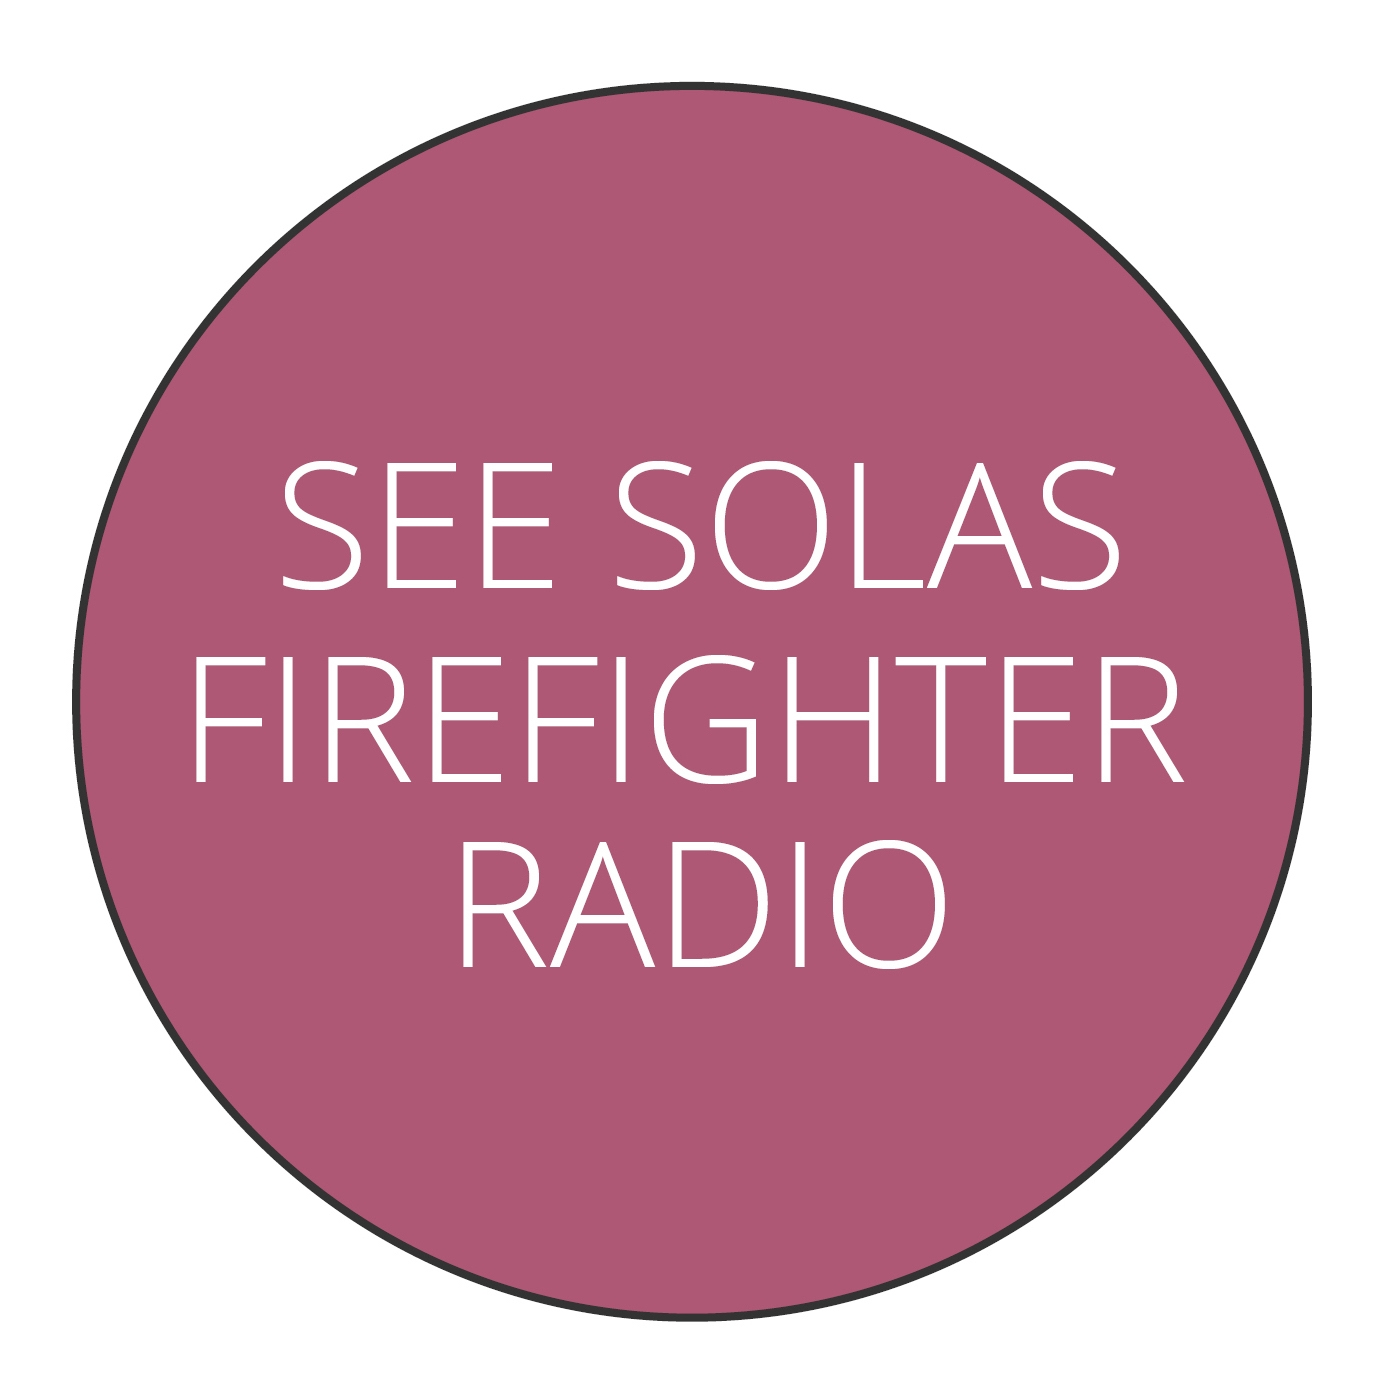 See solas firefighter radio